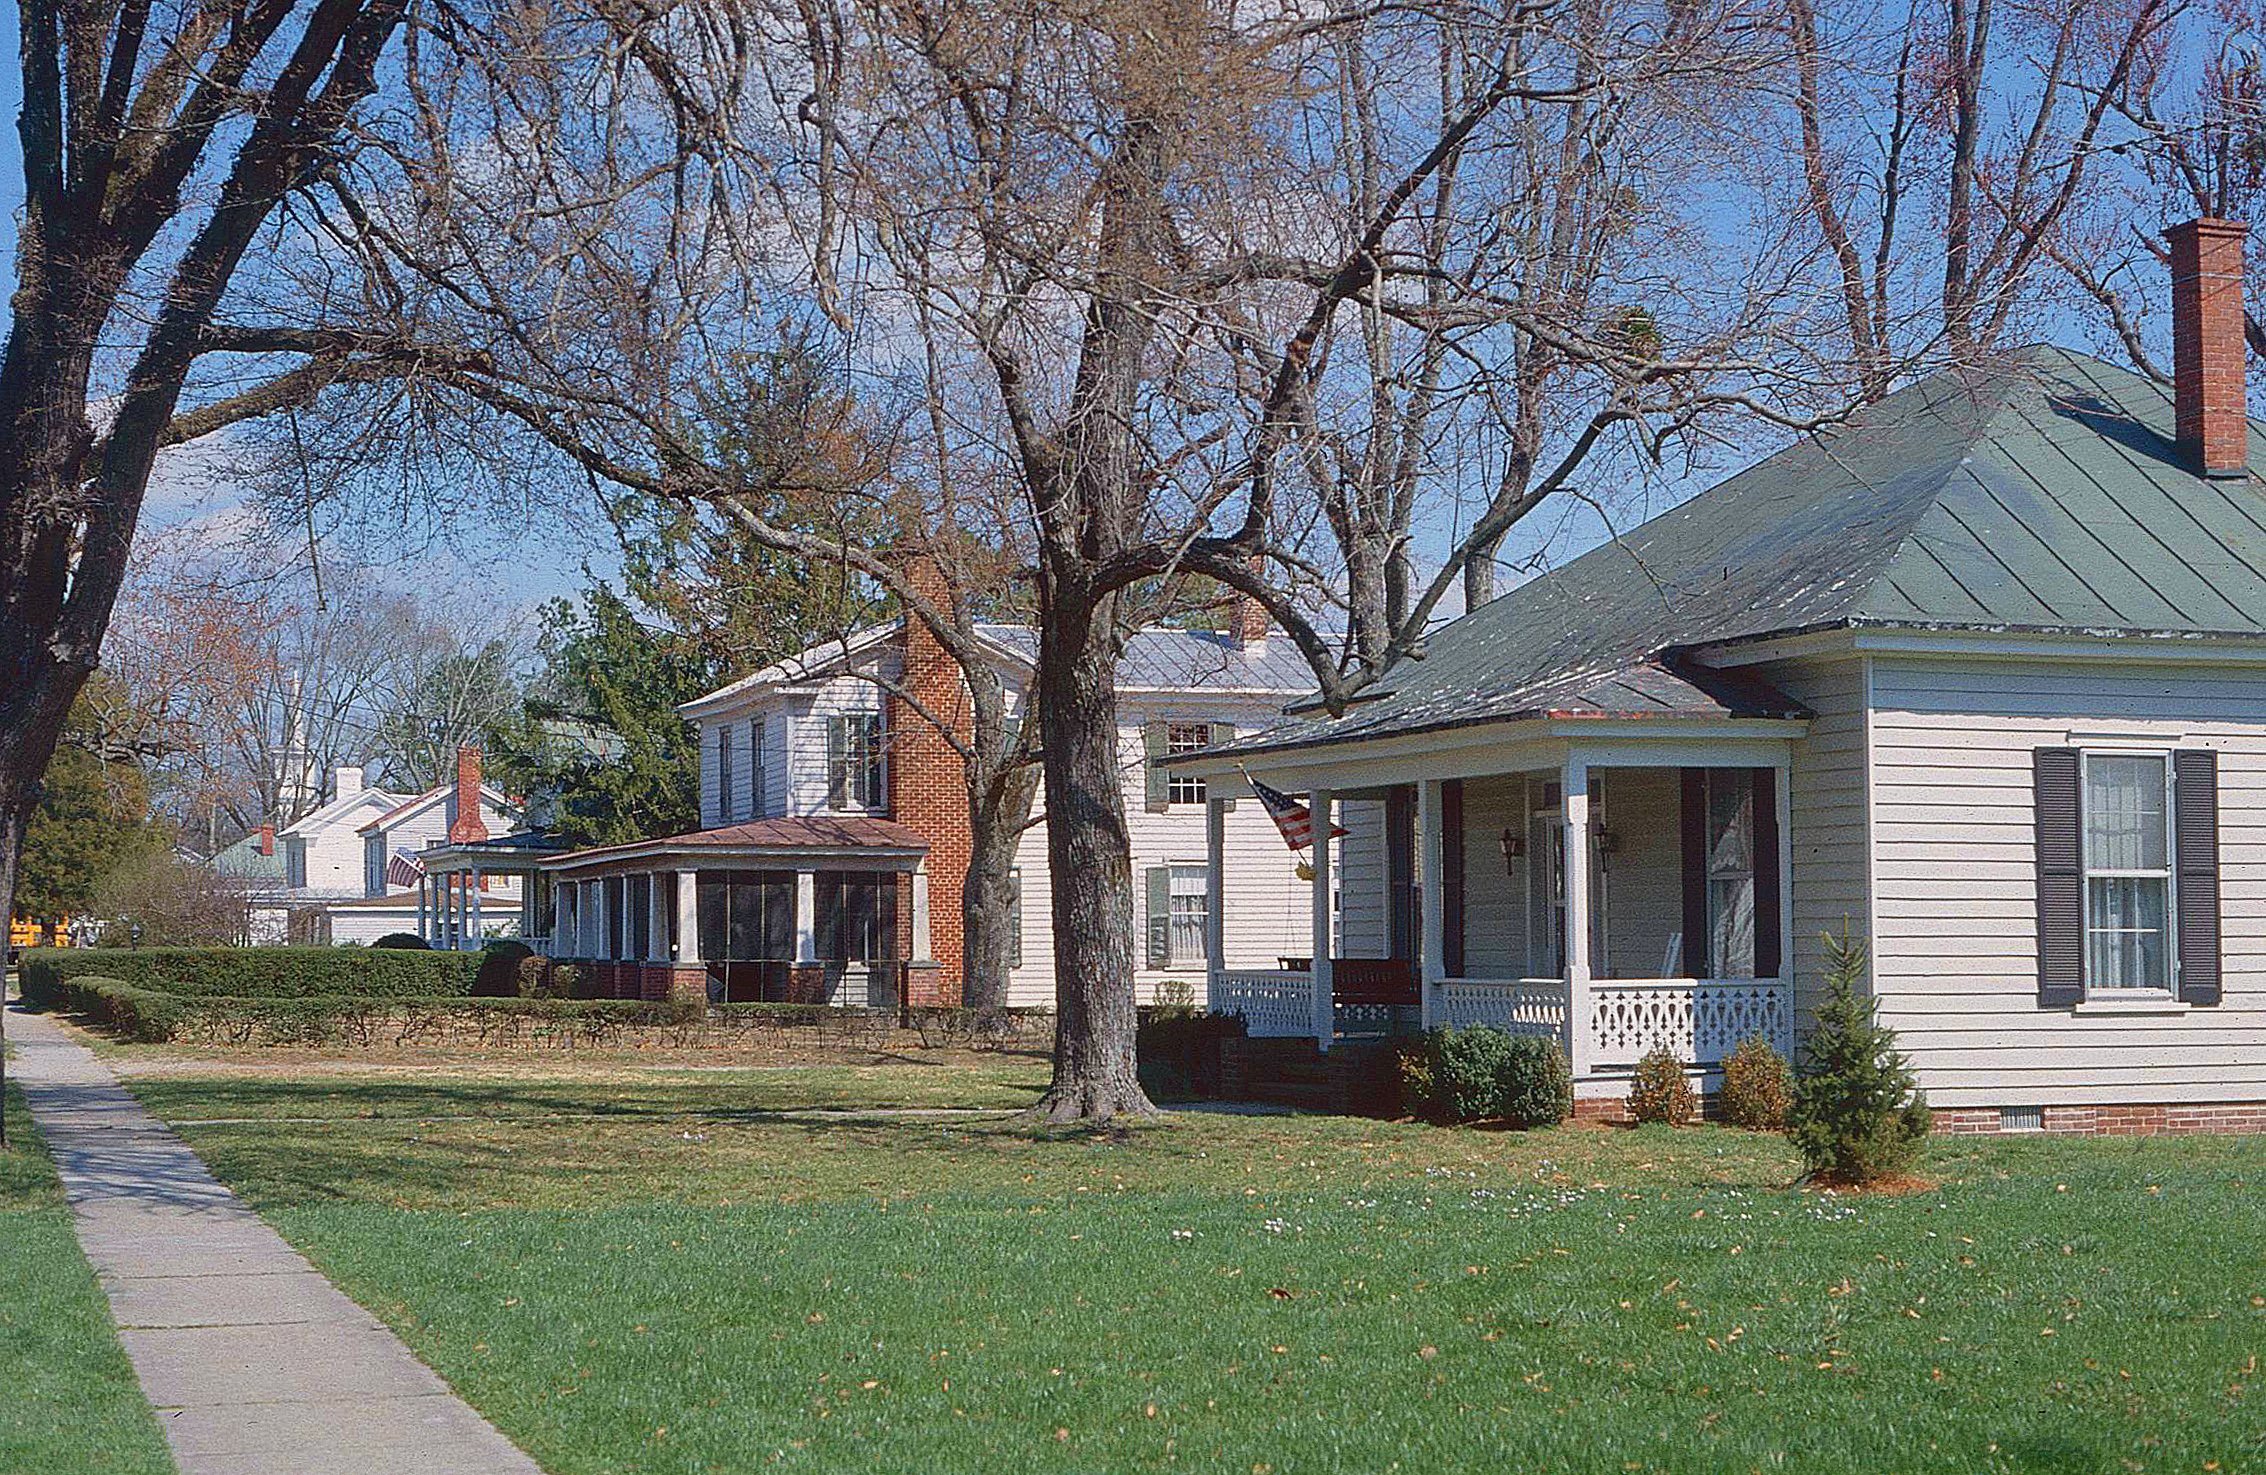 Whaleyville Historic District